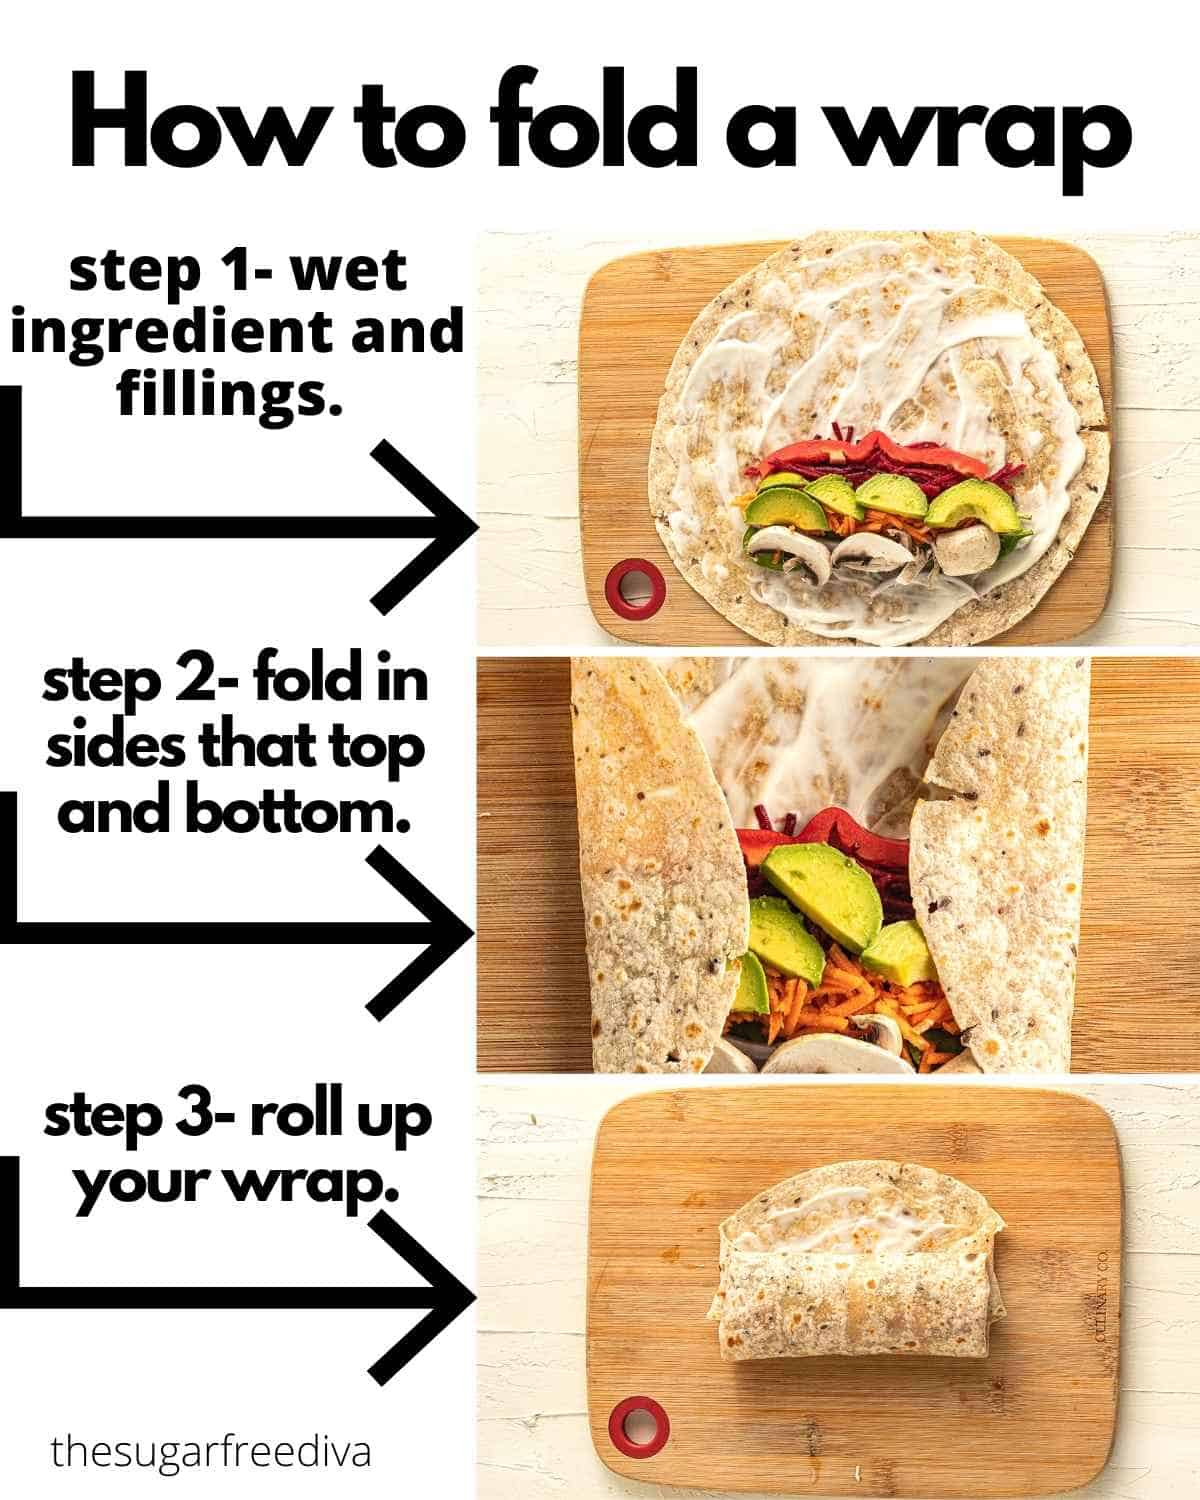 How to fold a wrap